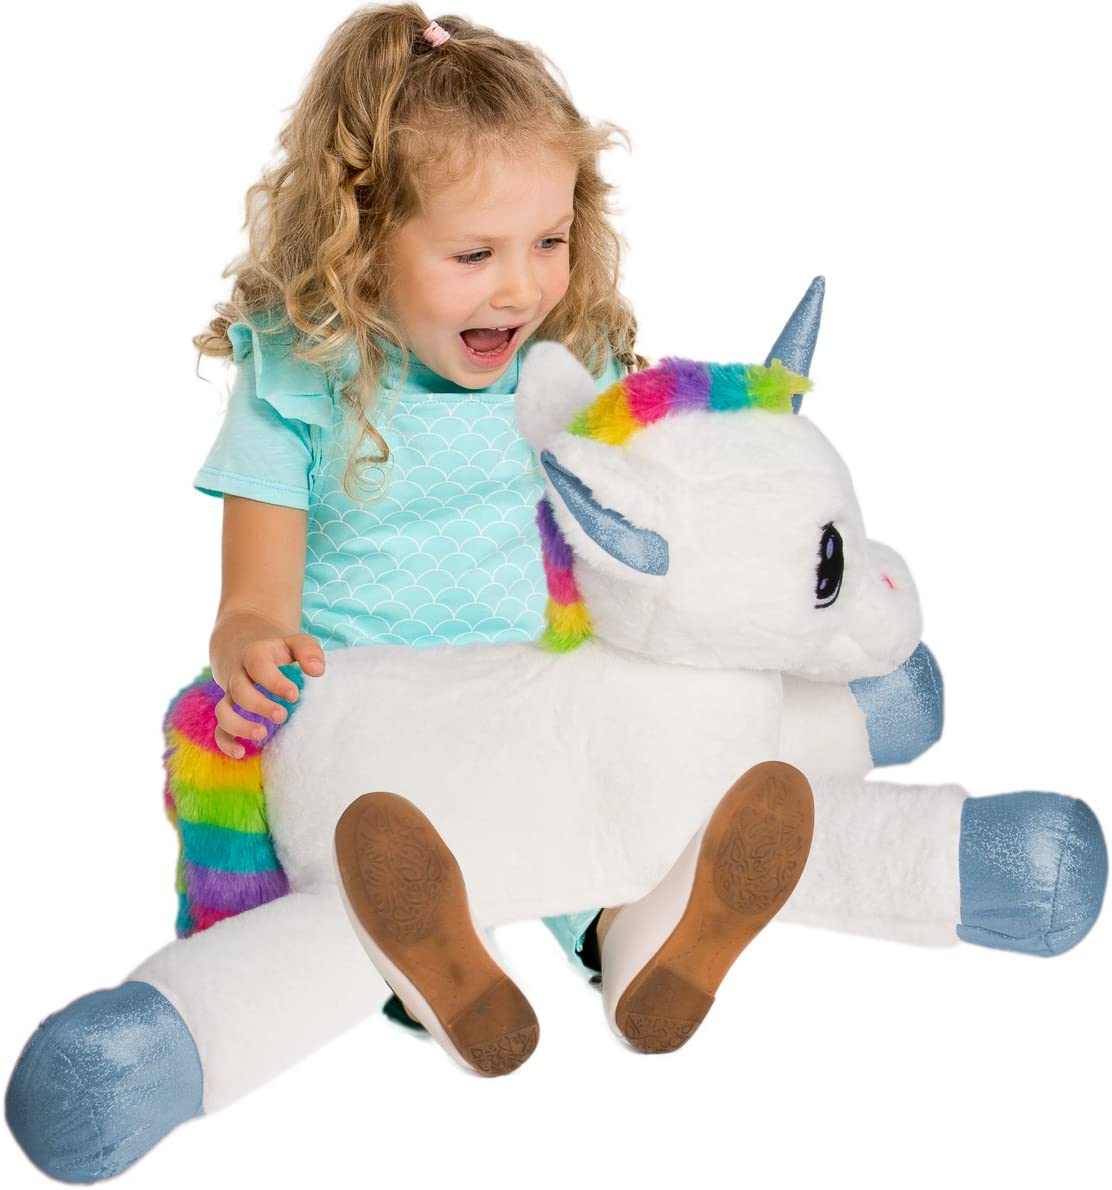 Gitzy 25 Inch Large Rainbow Unicorn Stuffed Animal Girls Kids Toddler Plush Toy Pillow Home Travel